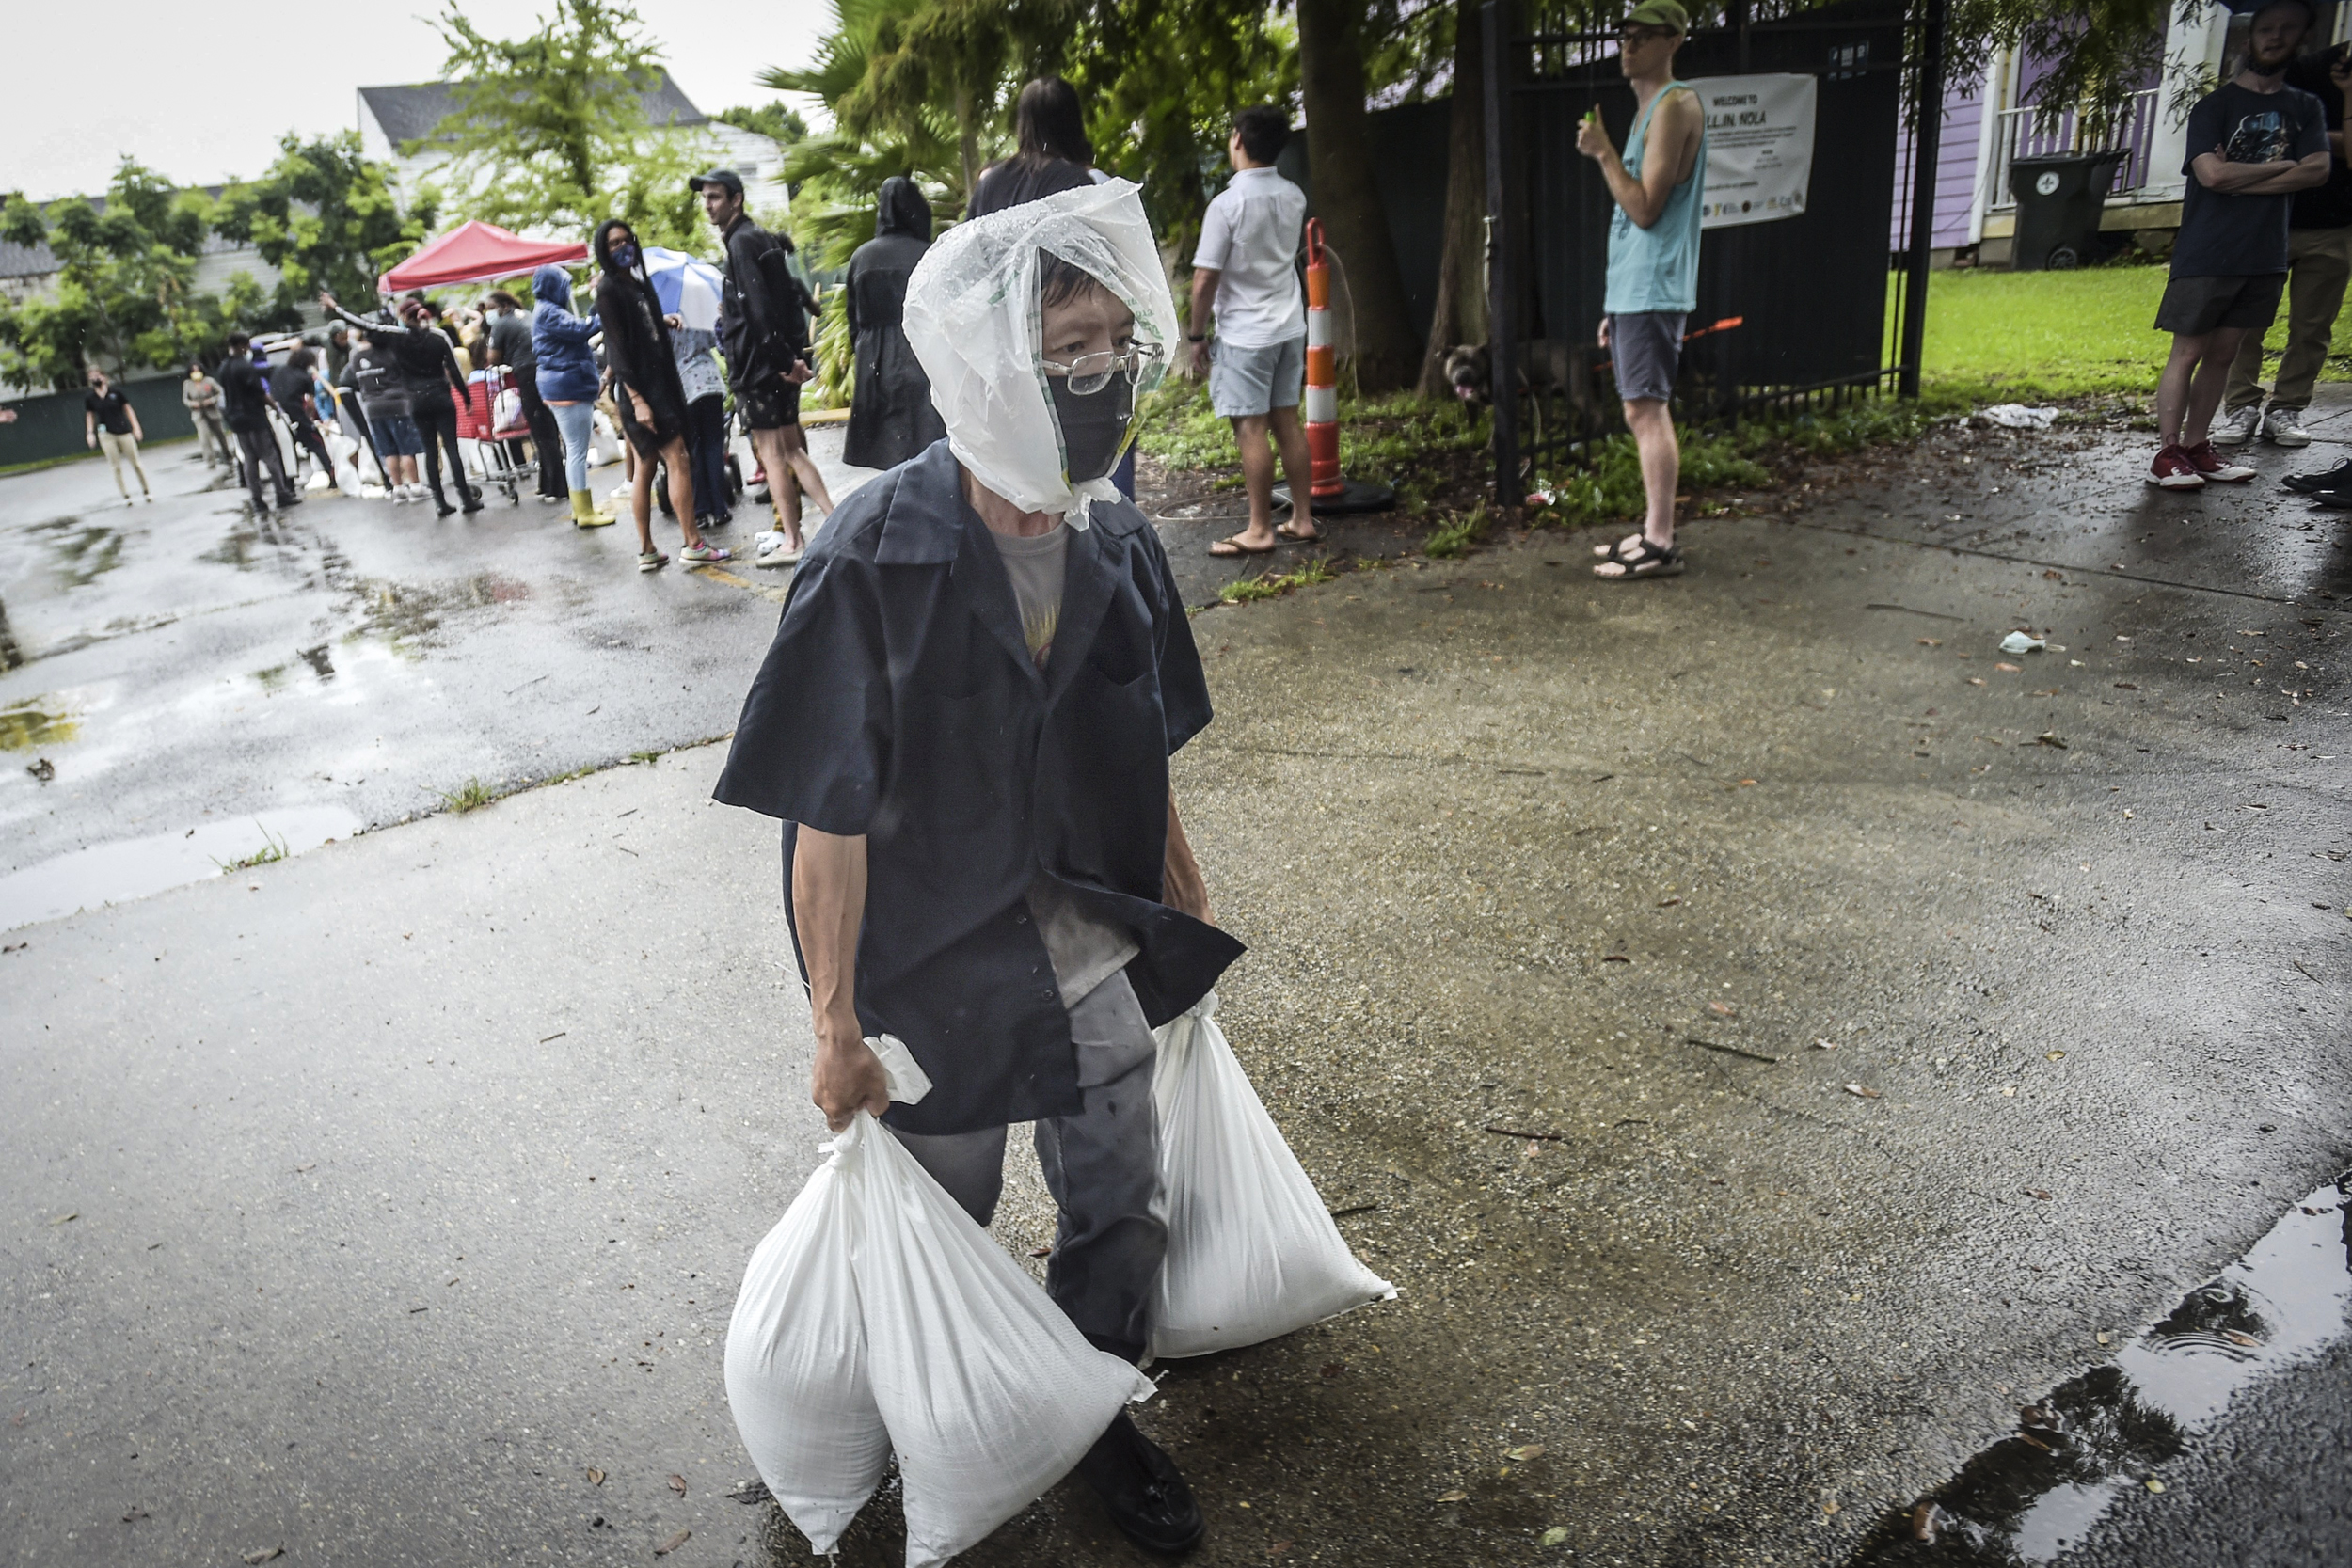 'Full disaster mode': New Orleans hospitals brace for dual emergencies